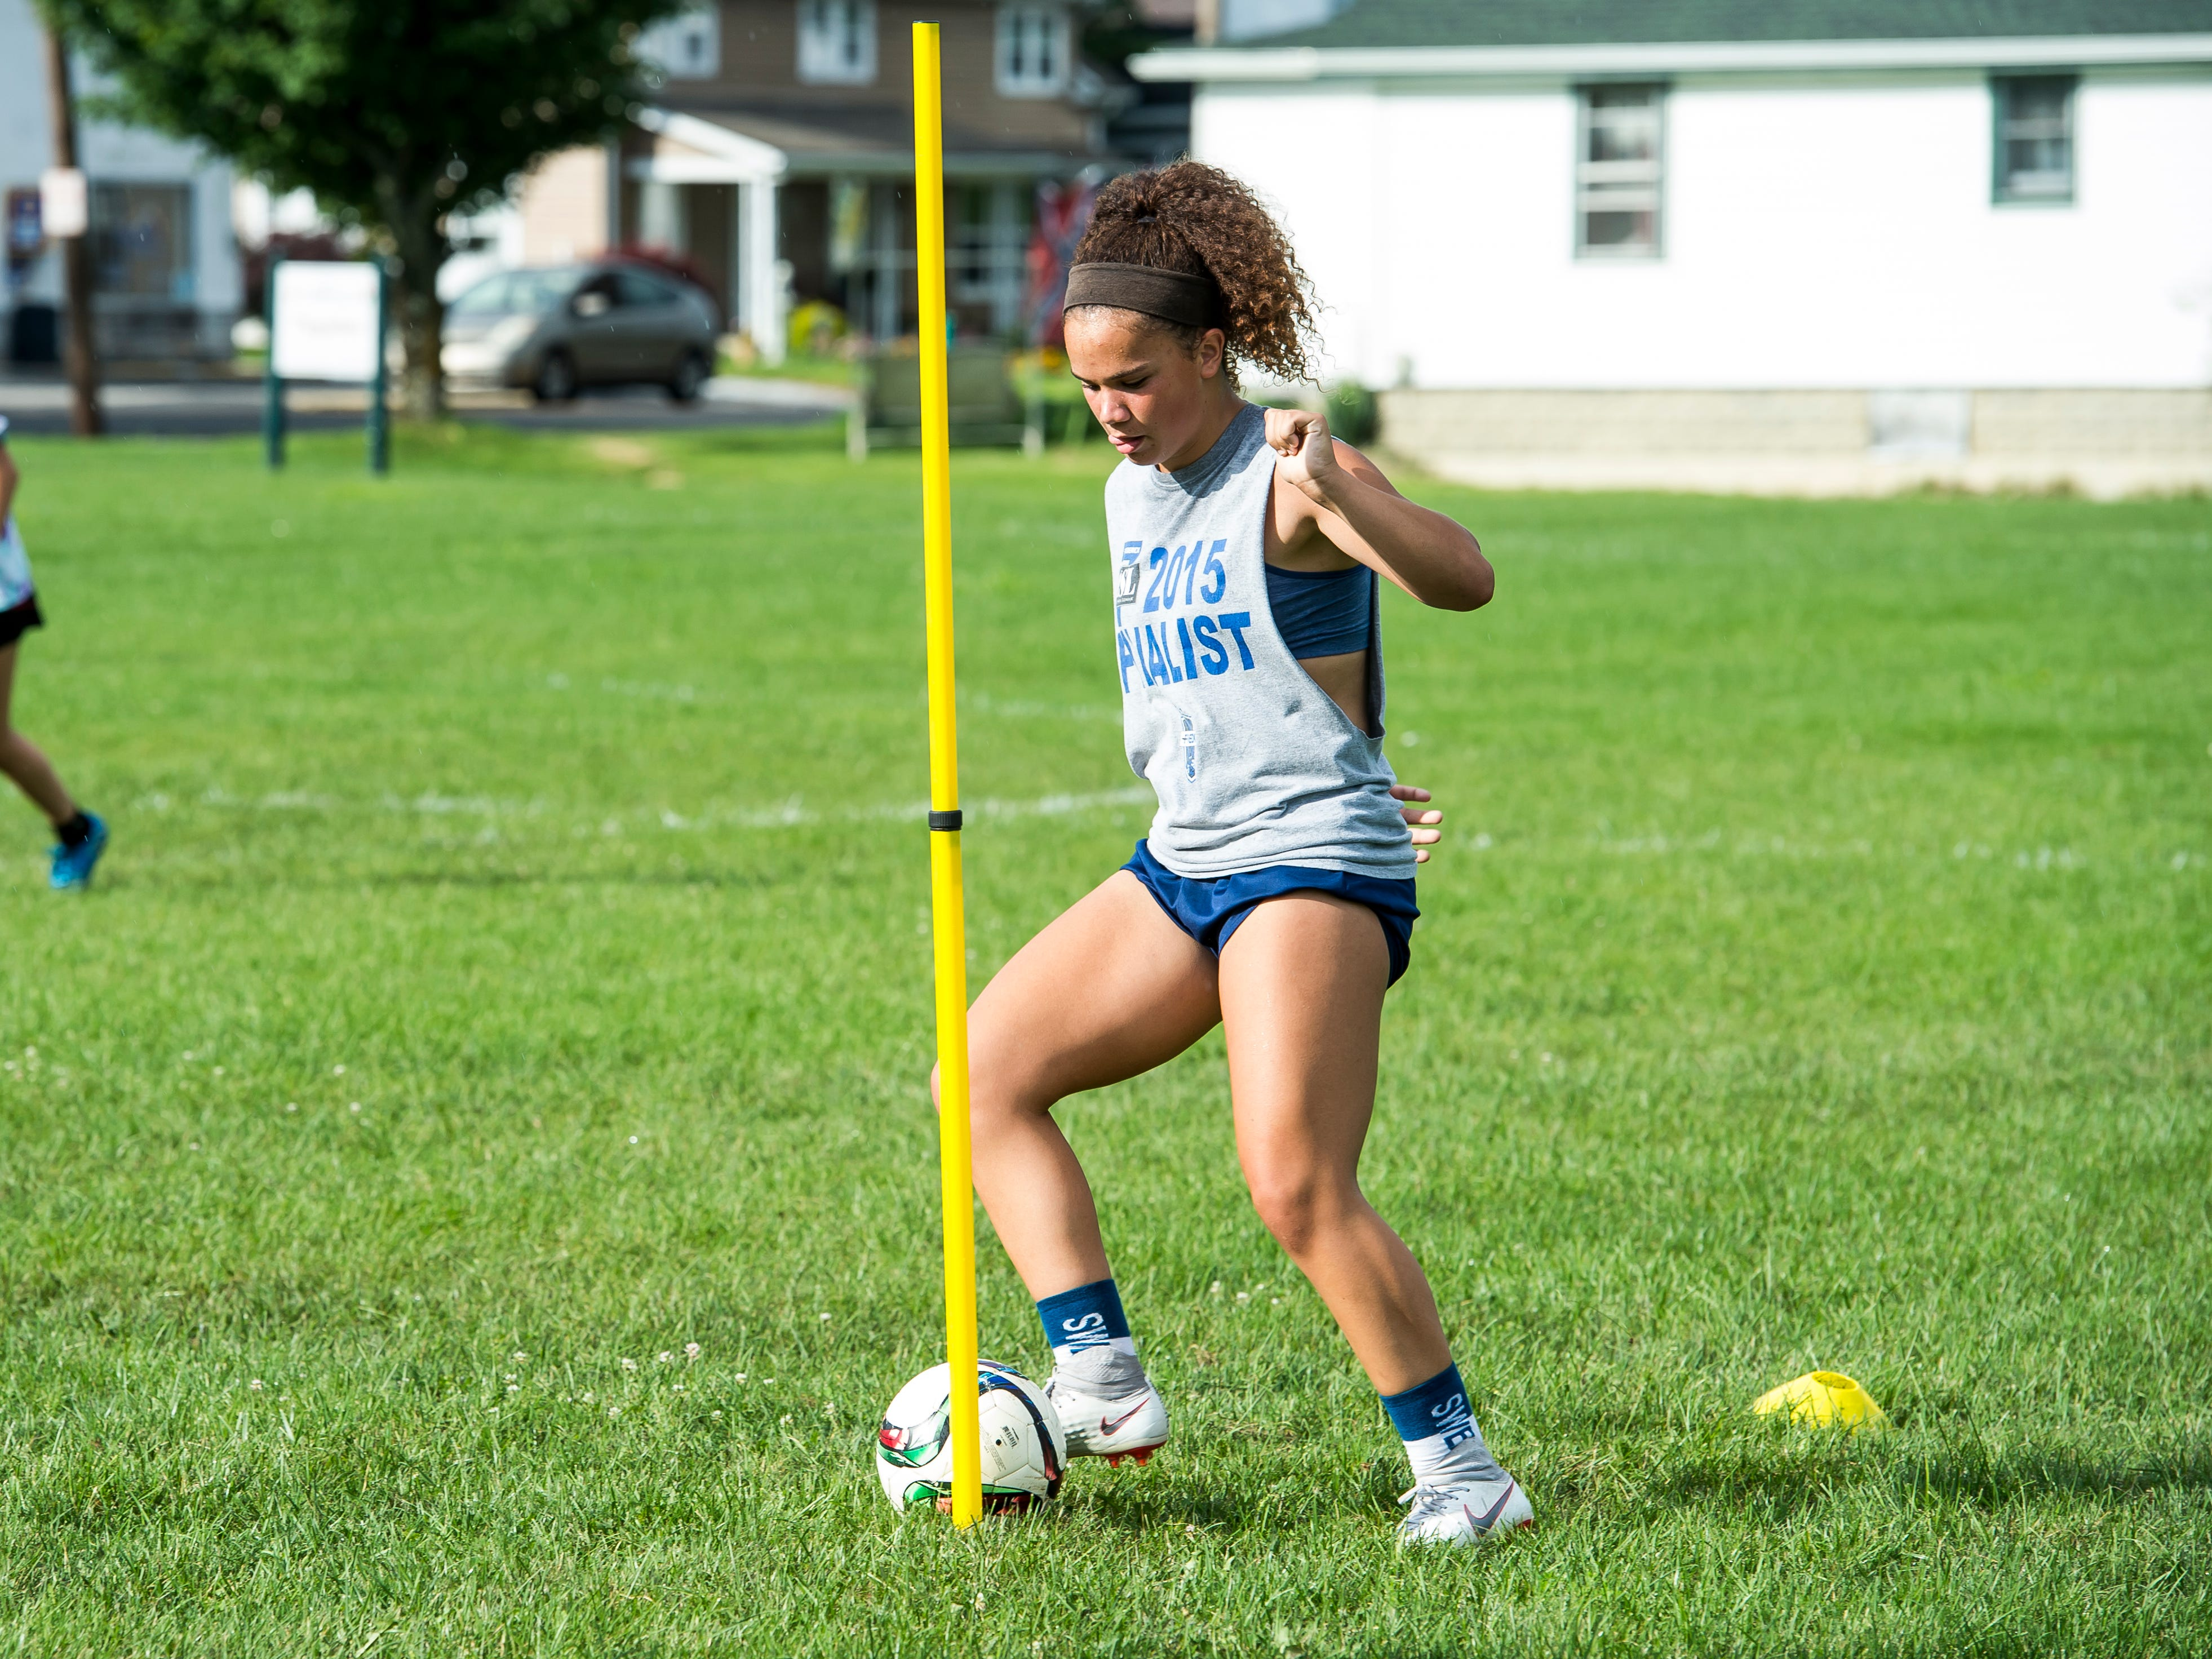 Fairfield junior Annabel Anderson works on a drill during the first day of fall sports practice on Monday, August 13, 2018.